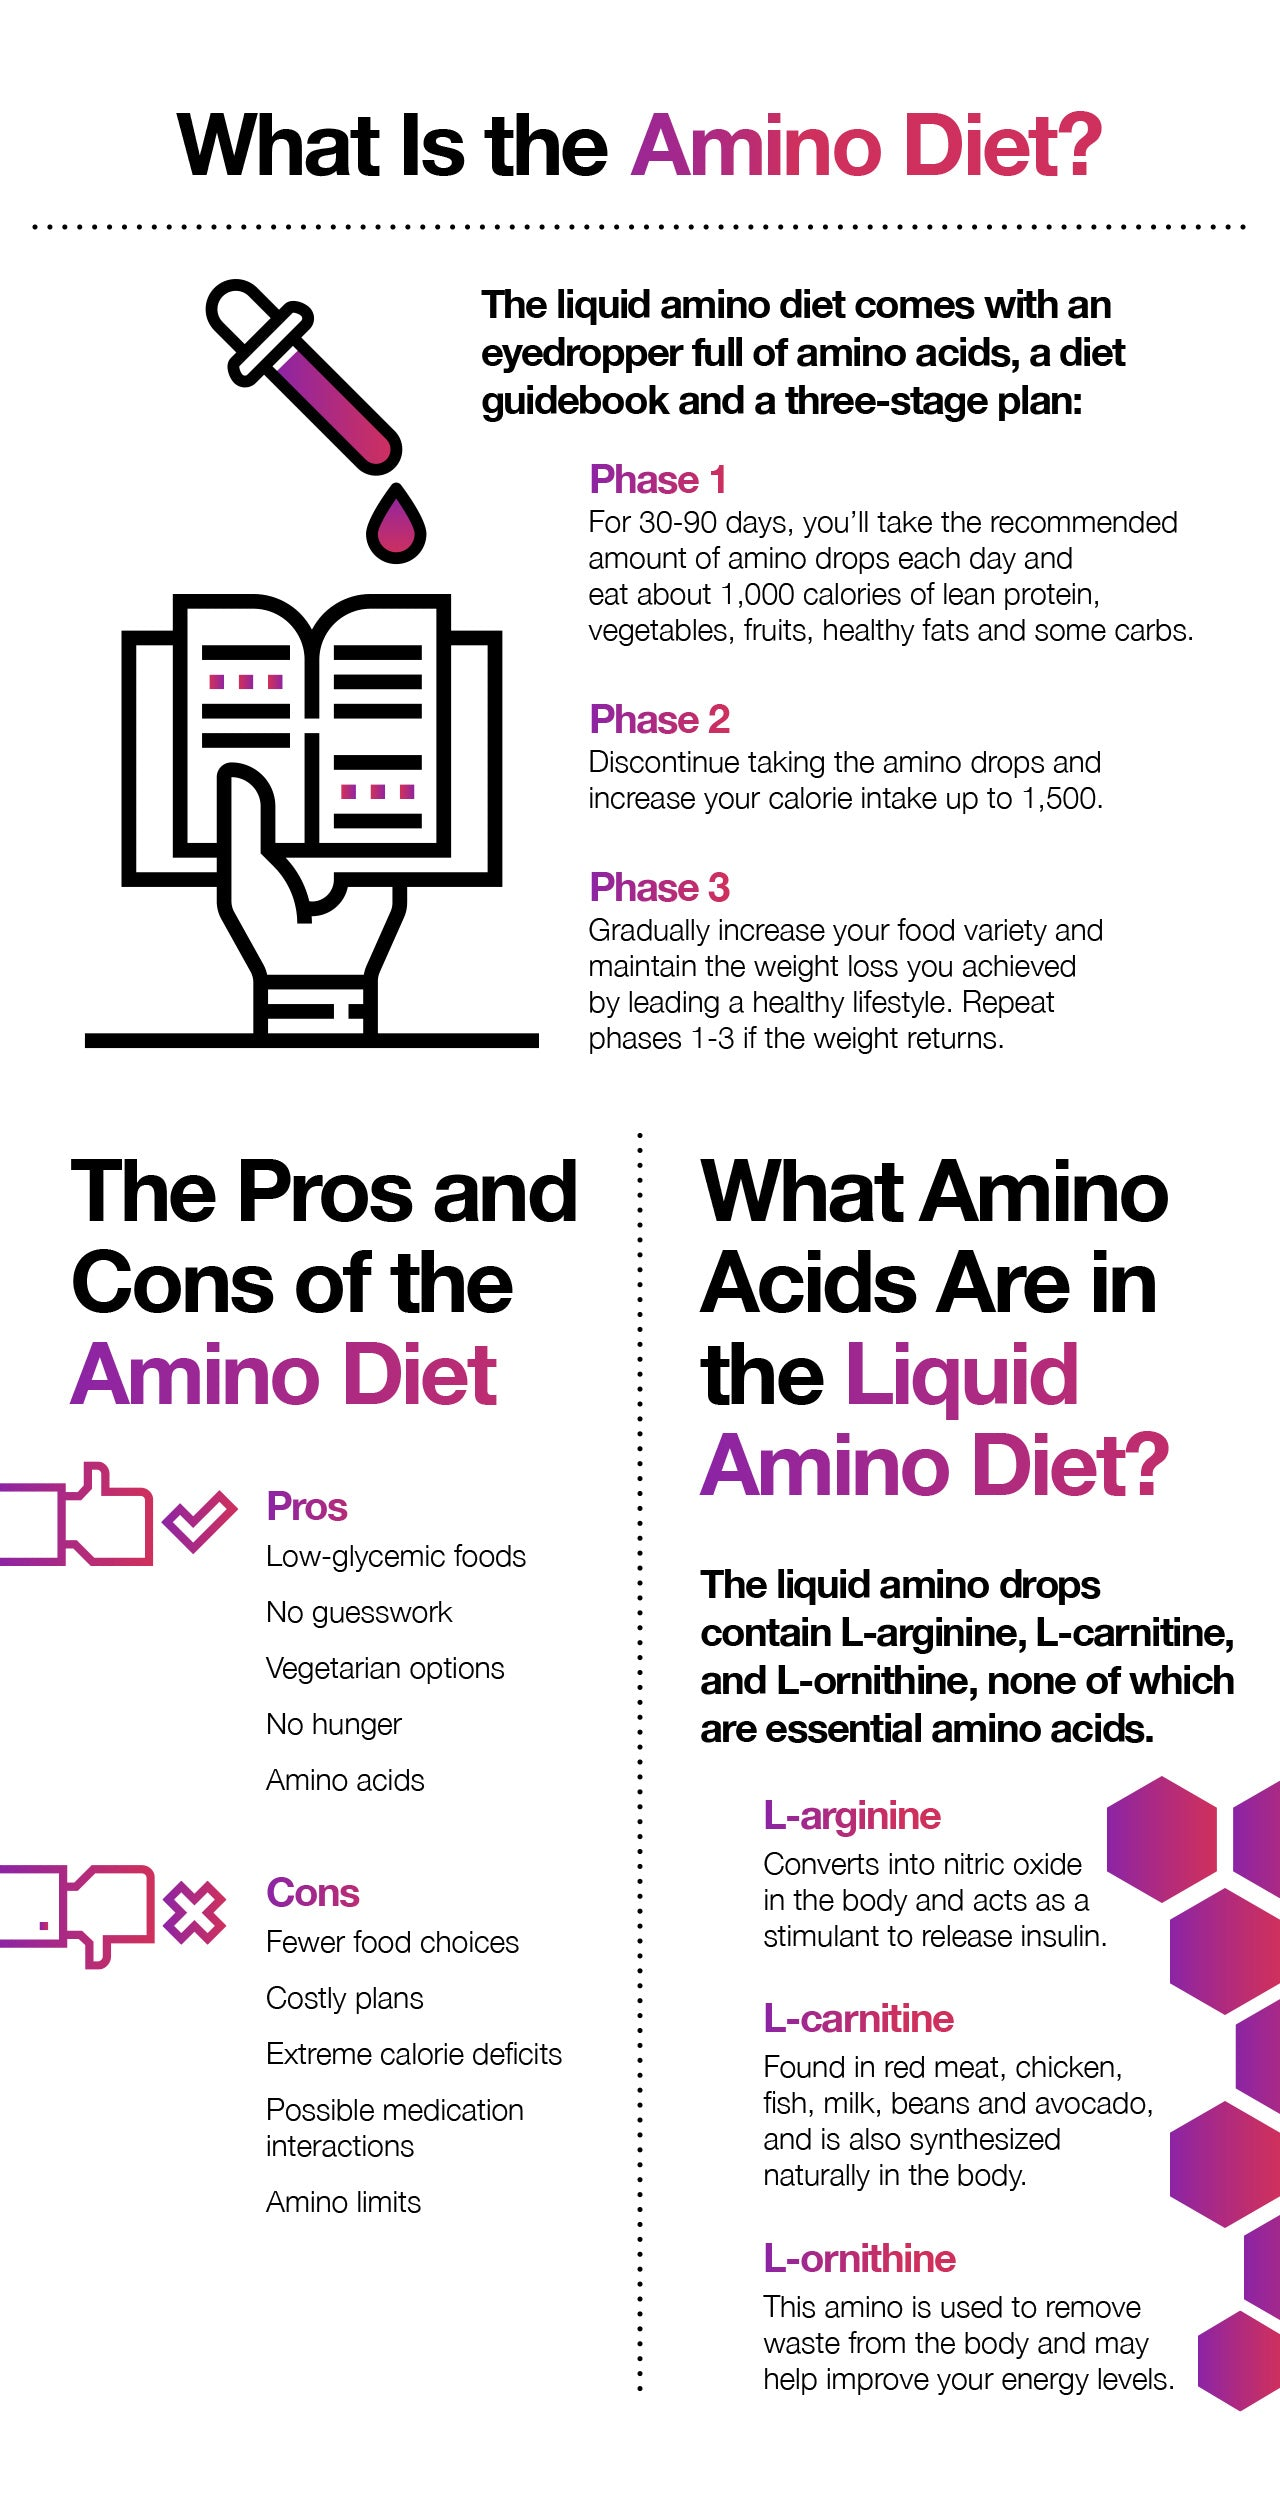 What is the amino acid diet?